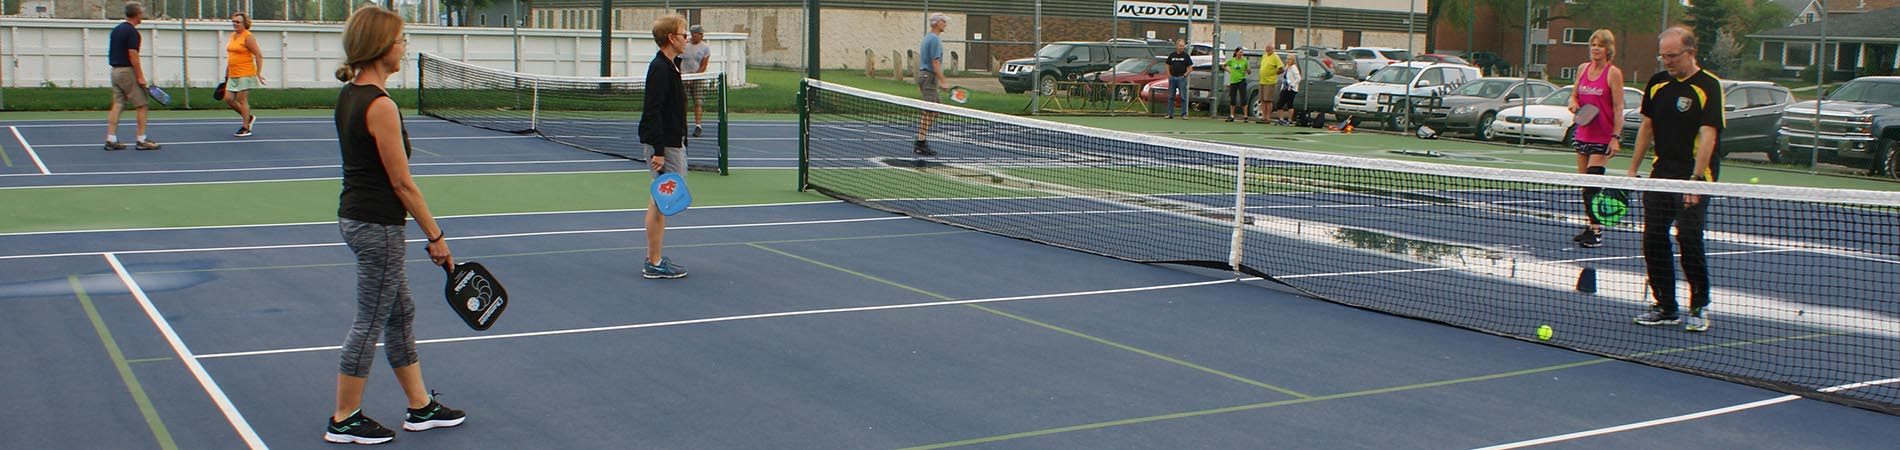 Seniors playing pickleball at Midtown